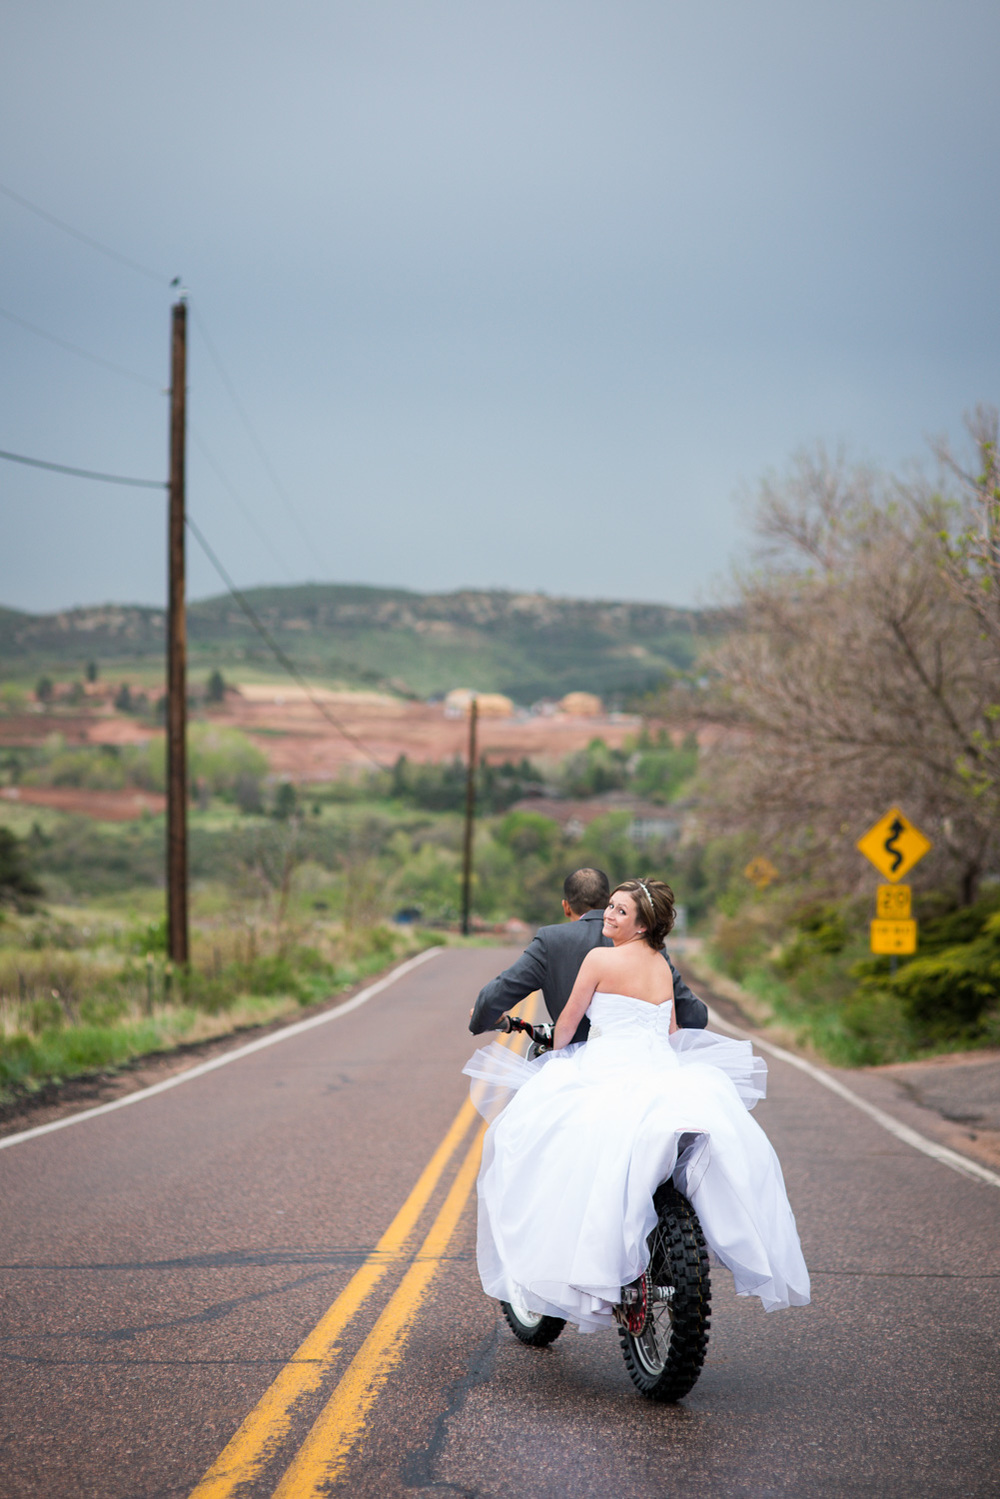 Bride and groom ride away on Motorcycle